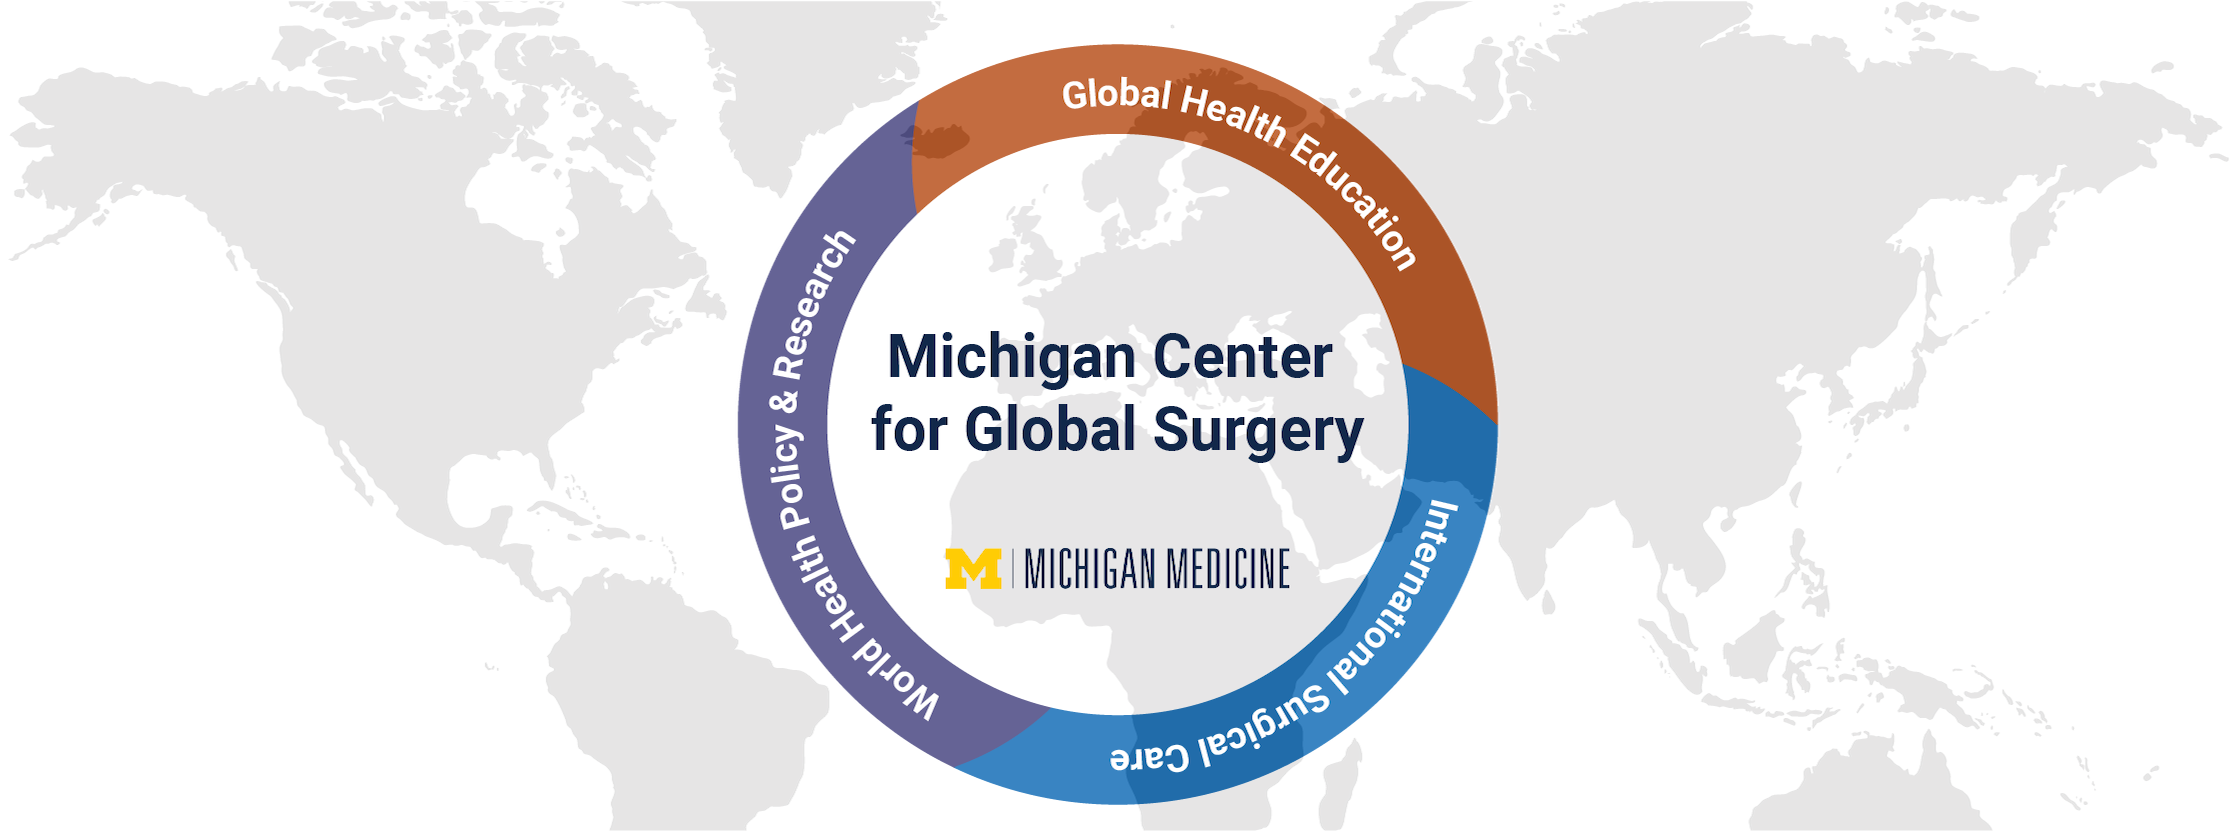 Michigan Center for Global Surgery at Michigan Medicine. World Health Policy & Research. Global Health Education. International Surgical Care.